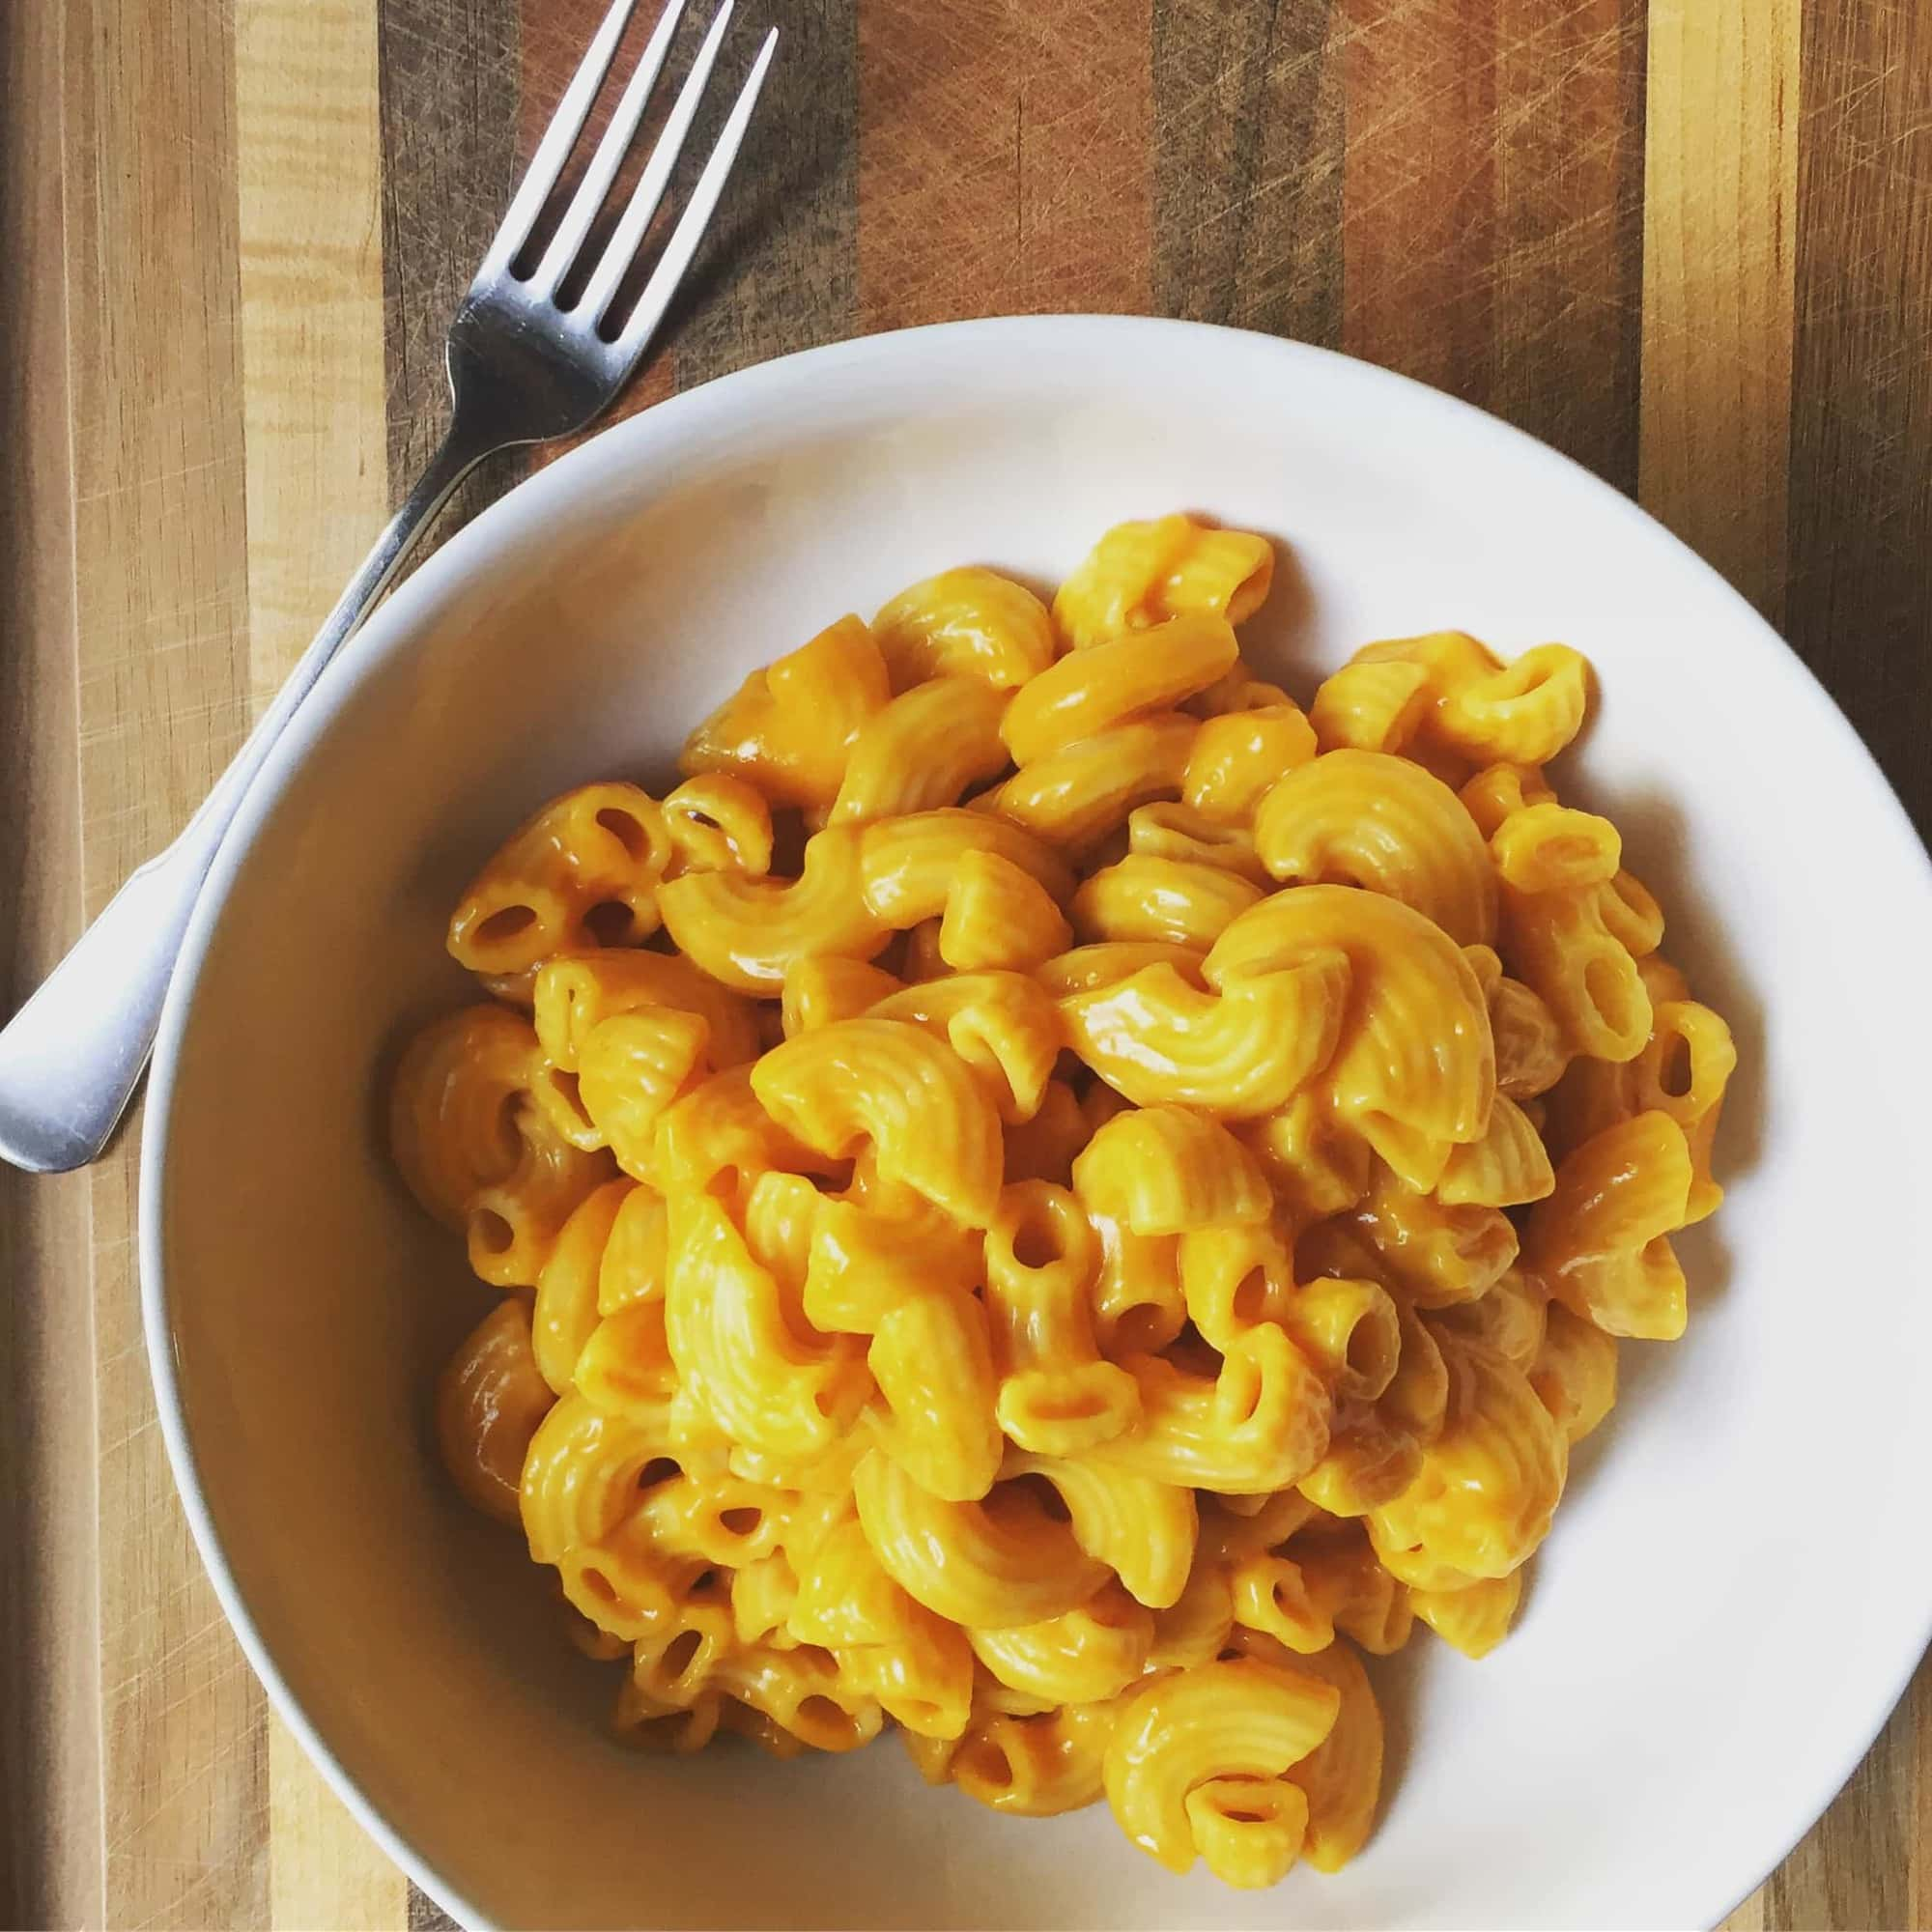 faux-veeta vegan cheese sauce for mac n cheese by very veganish